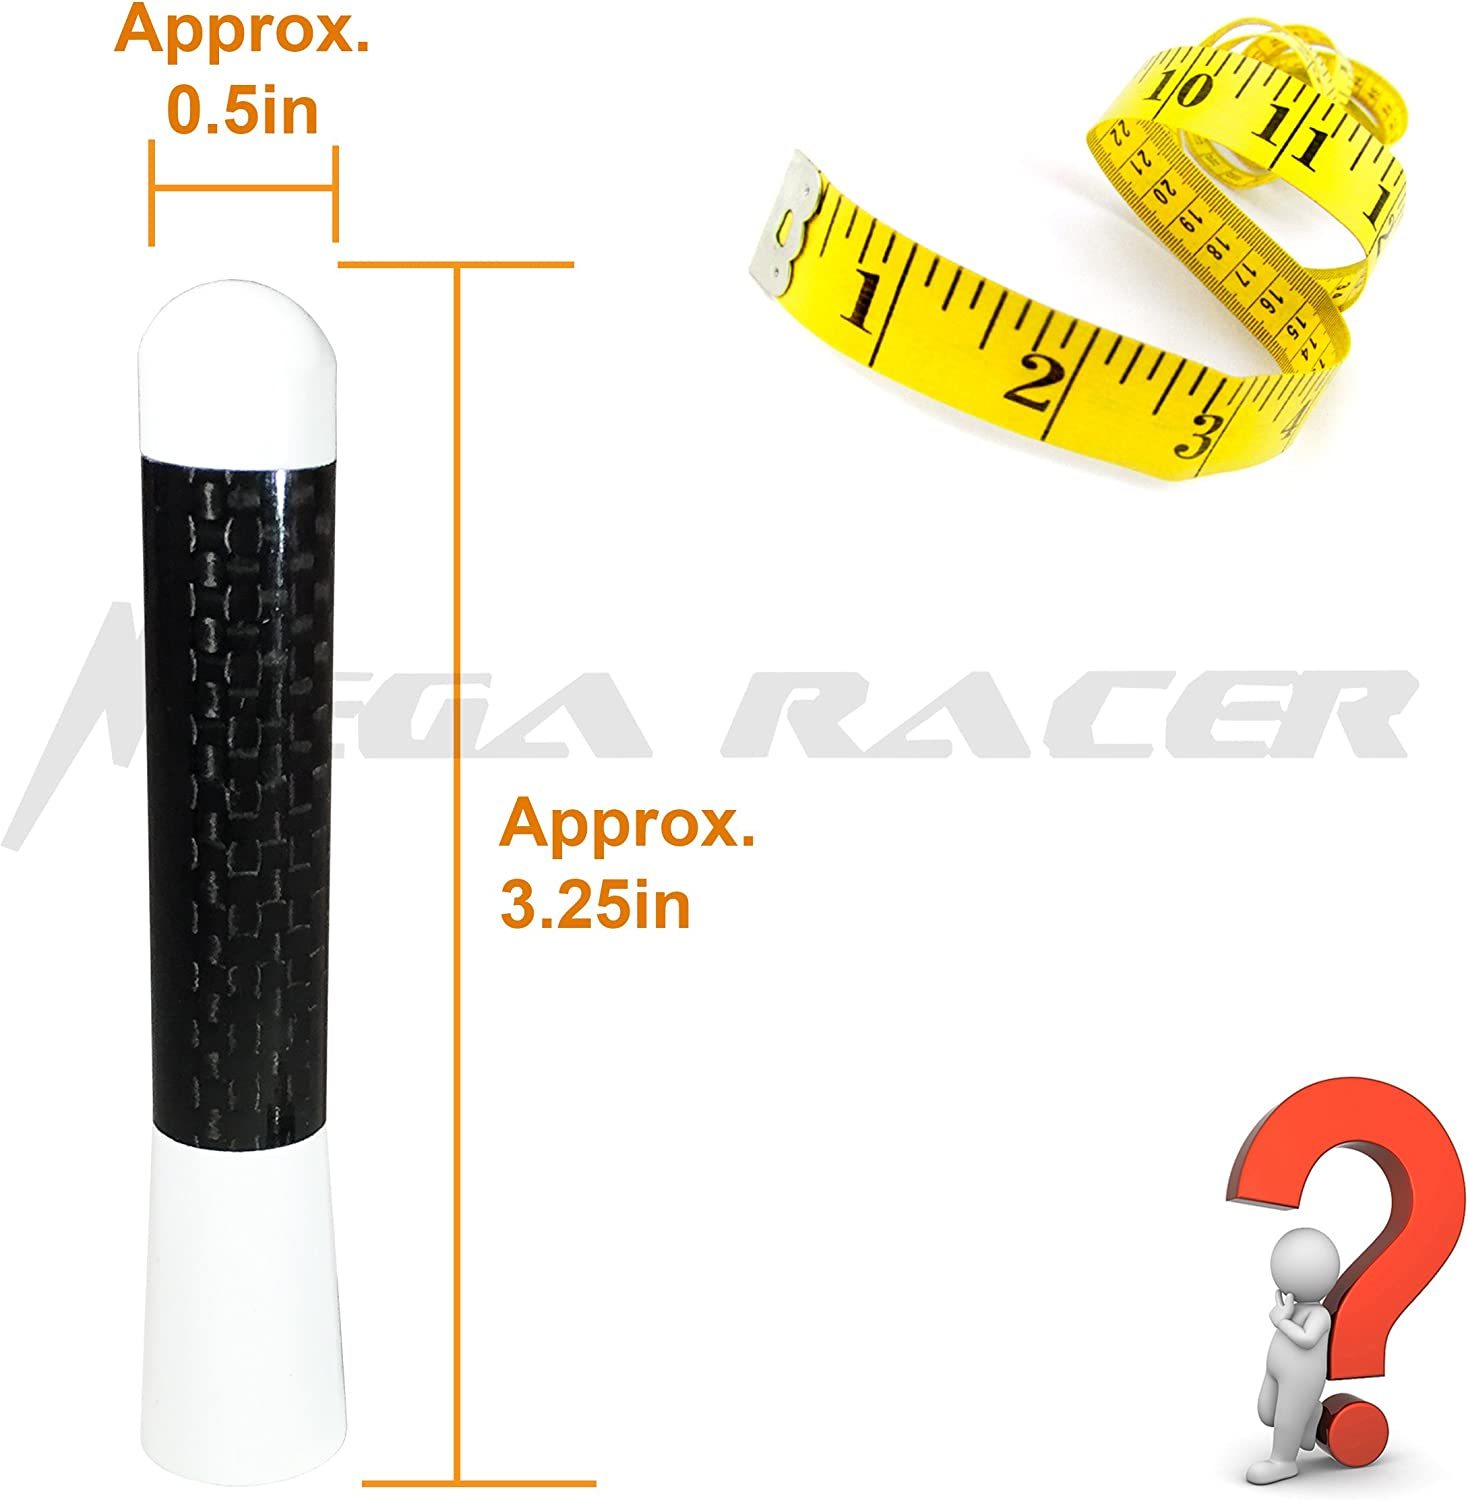 83 mm Real Carbon Fiber Screw Type Short Stubby Antenna Replace Auto Car SUV Mega Racer 1 x Nismo Style White 3.25 in